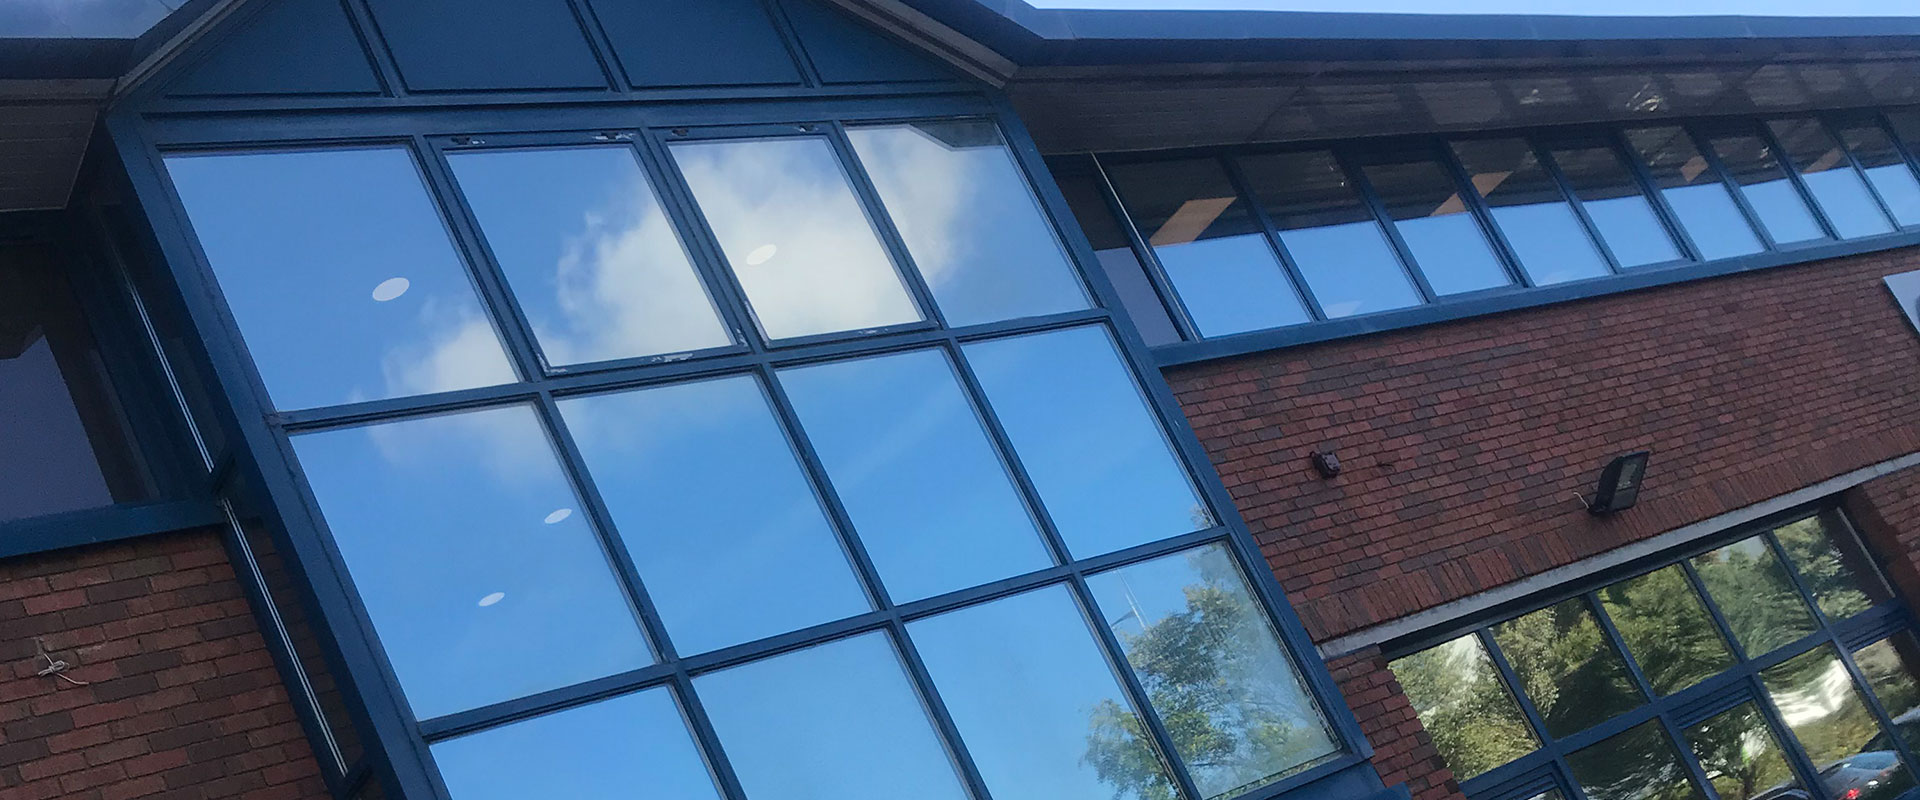 Landlord and commerical window repair service